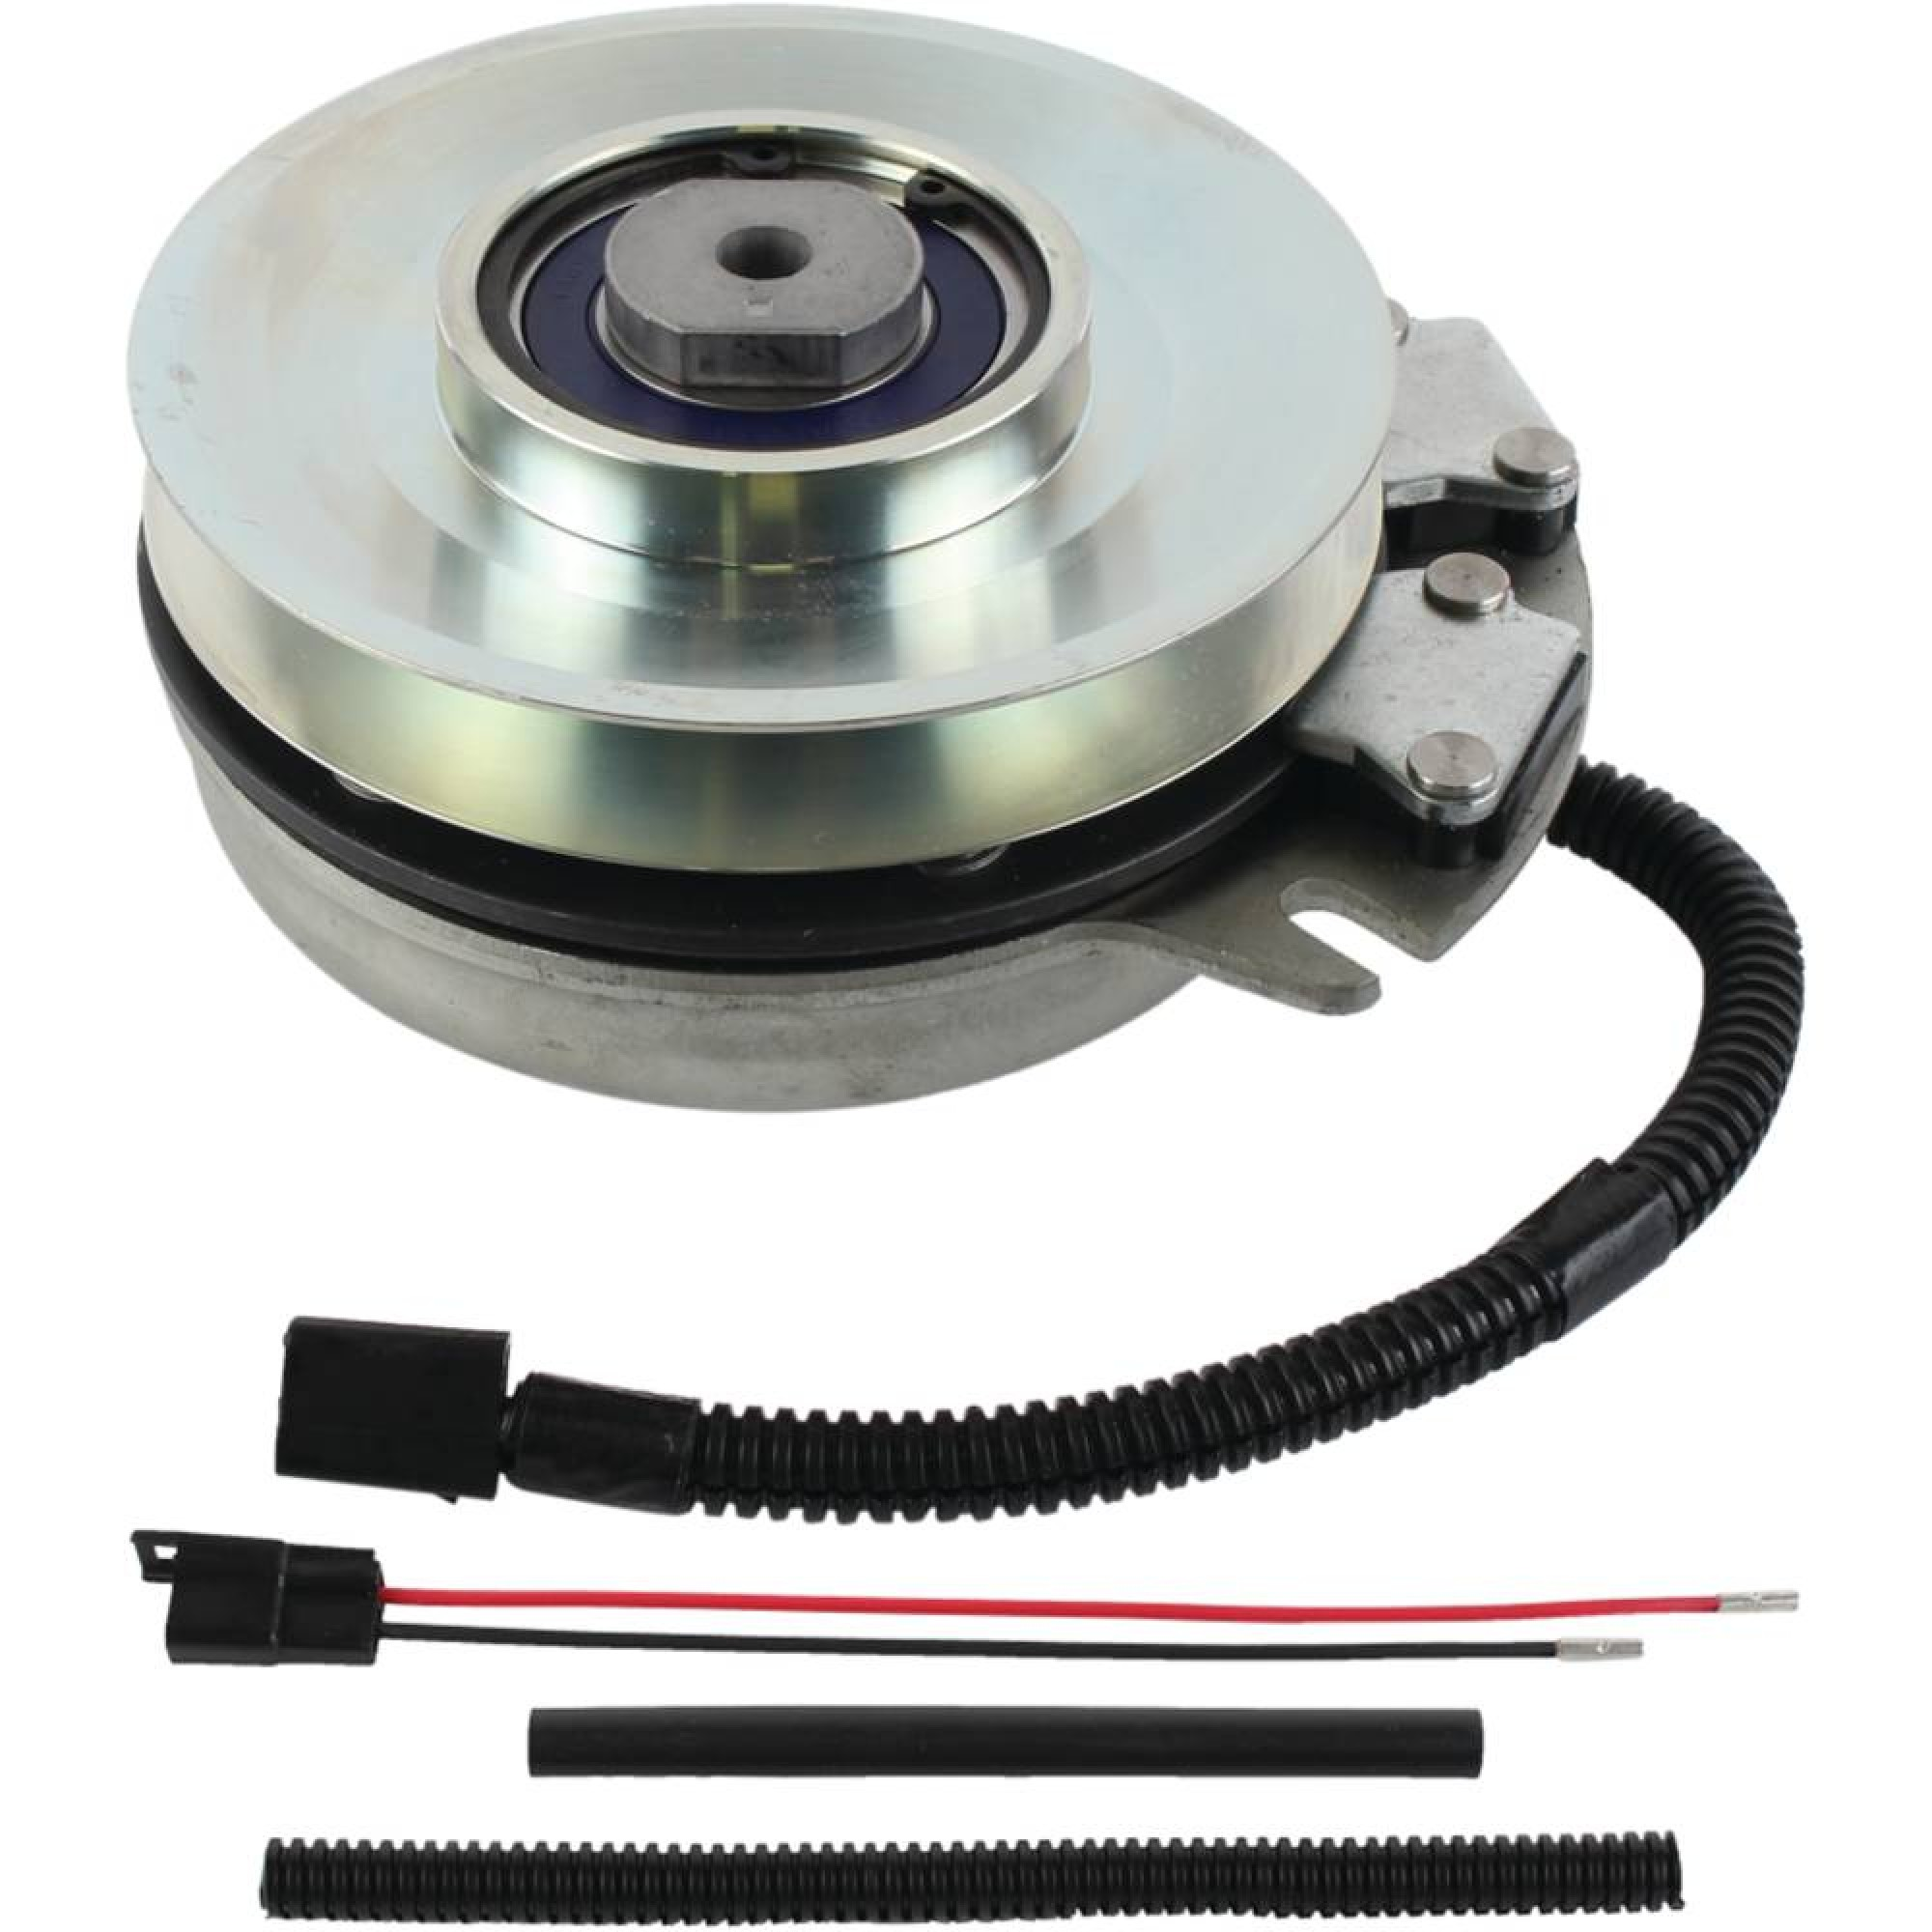 xtreme replacement clutch for wright stander 71410001 with wire harness repair kit xtreme outdoor power equipment [ 1139 x 1280 Pixel ]